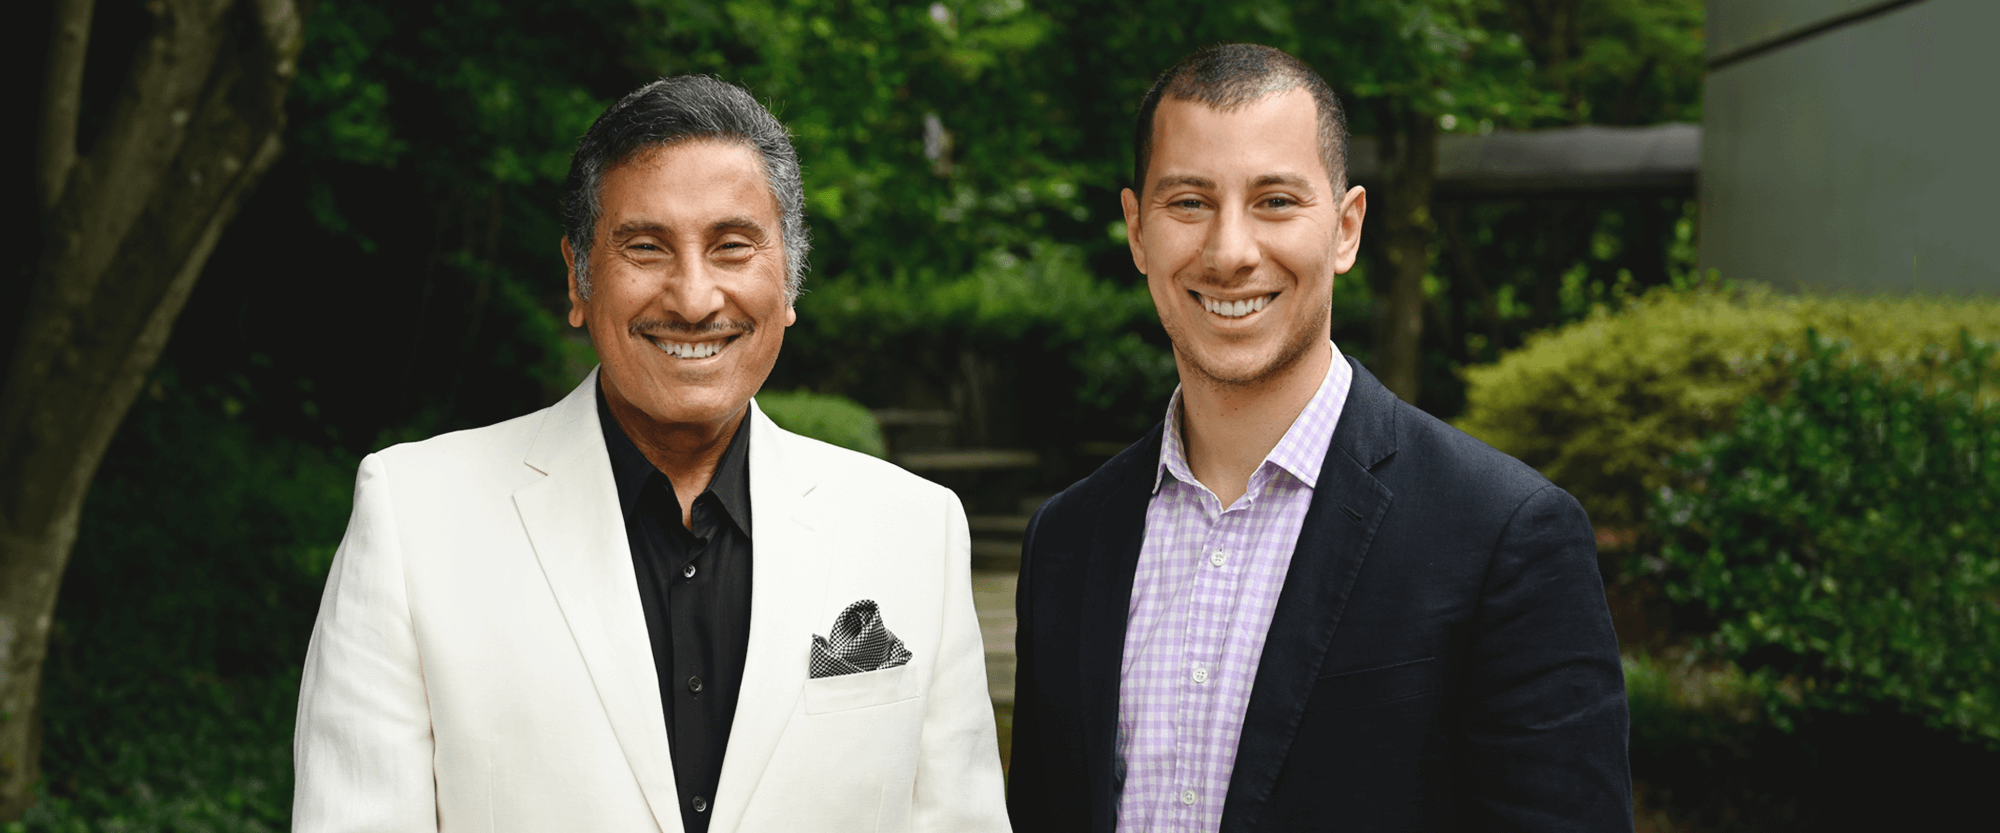 Photo of Dr. Michael Youssef and Jonathan Youssef